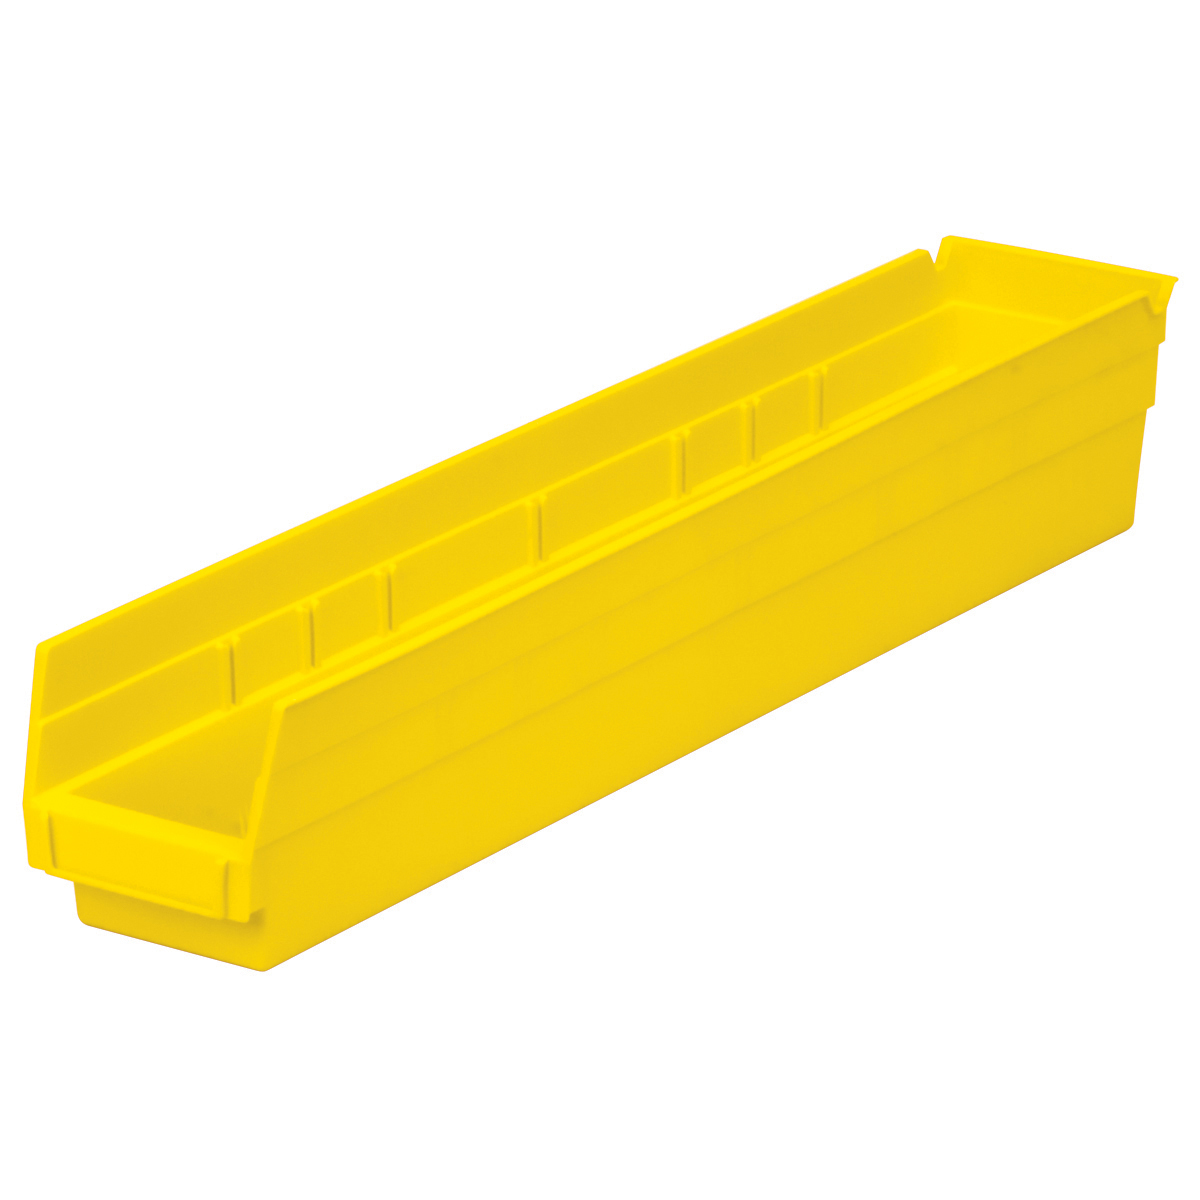 Shelf Bin 23-5/8 x 4-1/8 x 4, Yellow (30124YELLO).  This item sold in carton quantities of 12.